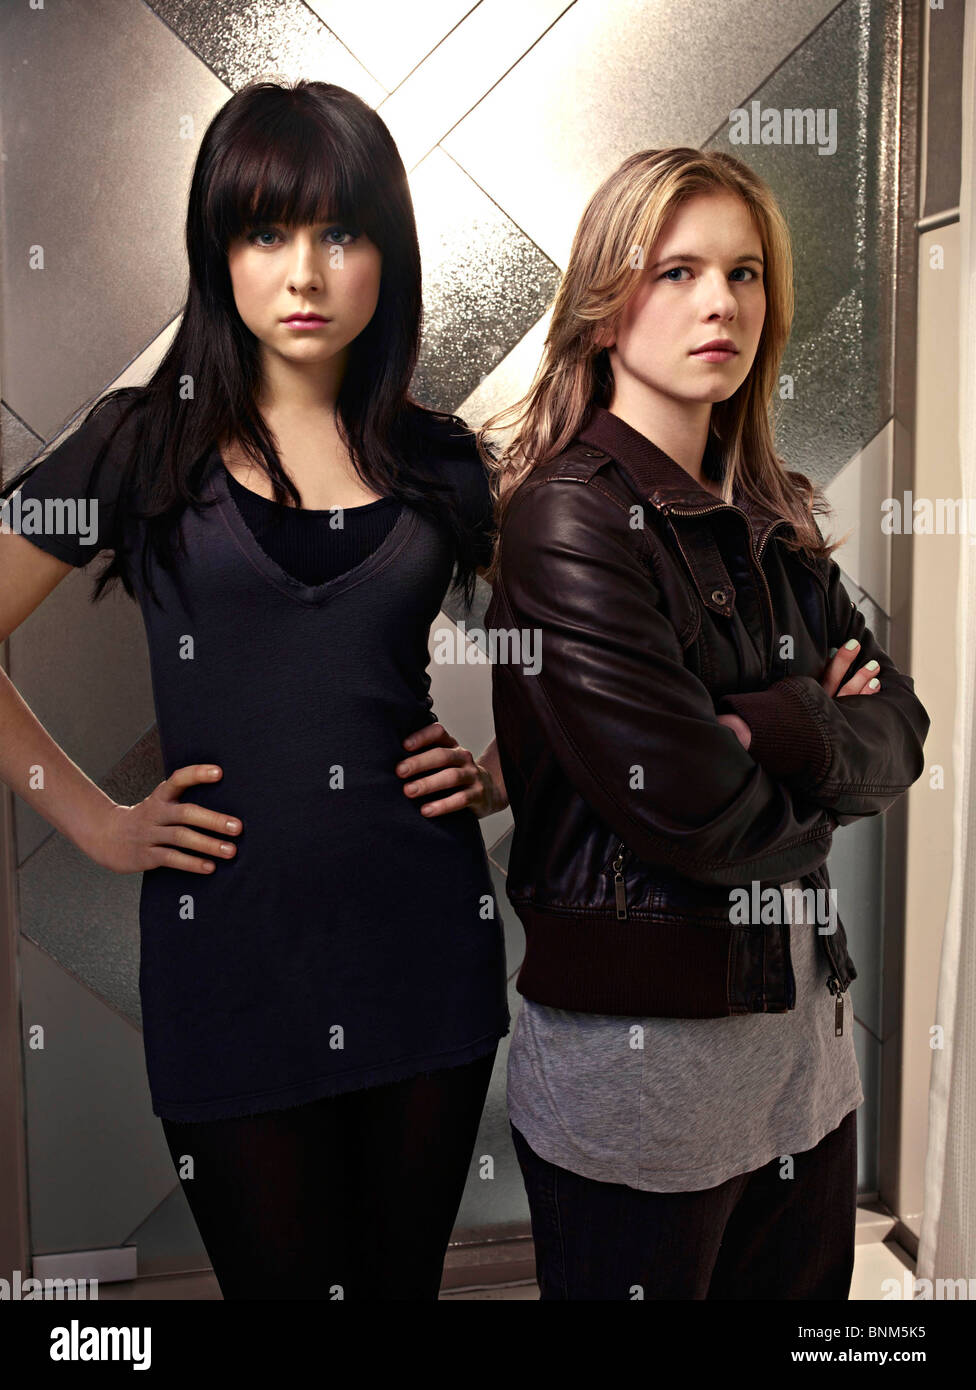 CAPRICA (TV) ALESSANDRA TORRESANI, MAGDA APANOWICZ 006 MOVIESTORE COLLECTION LTD - Stock Image